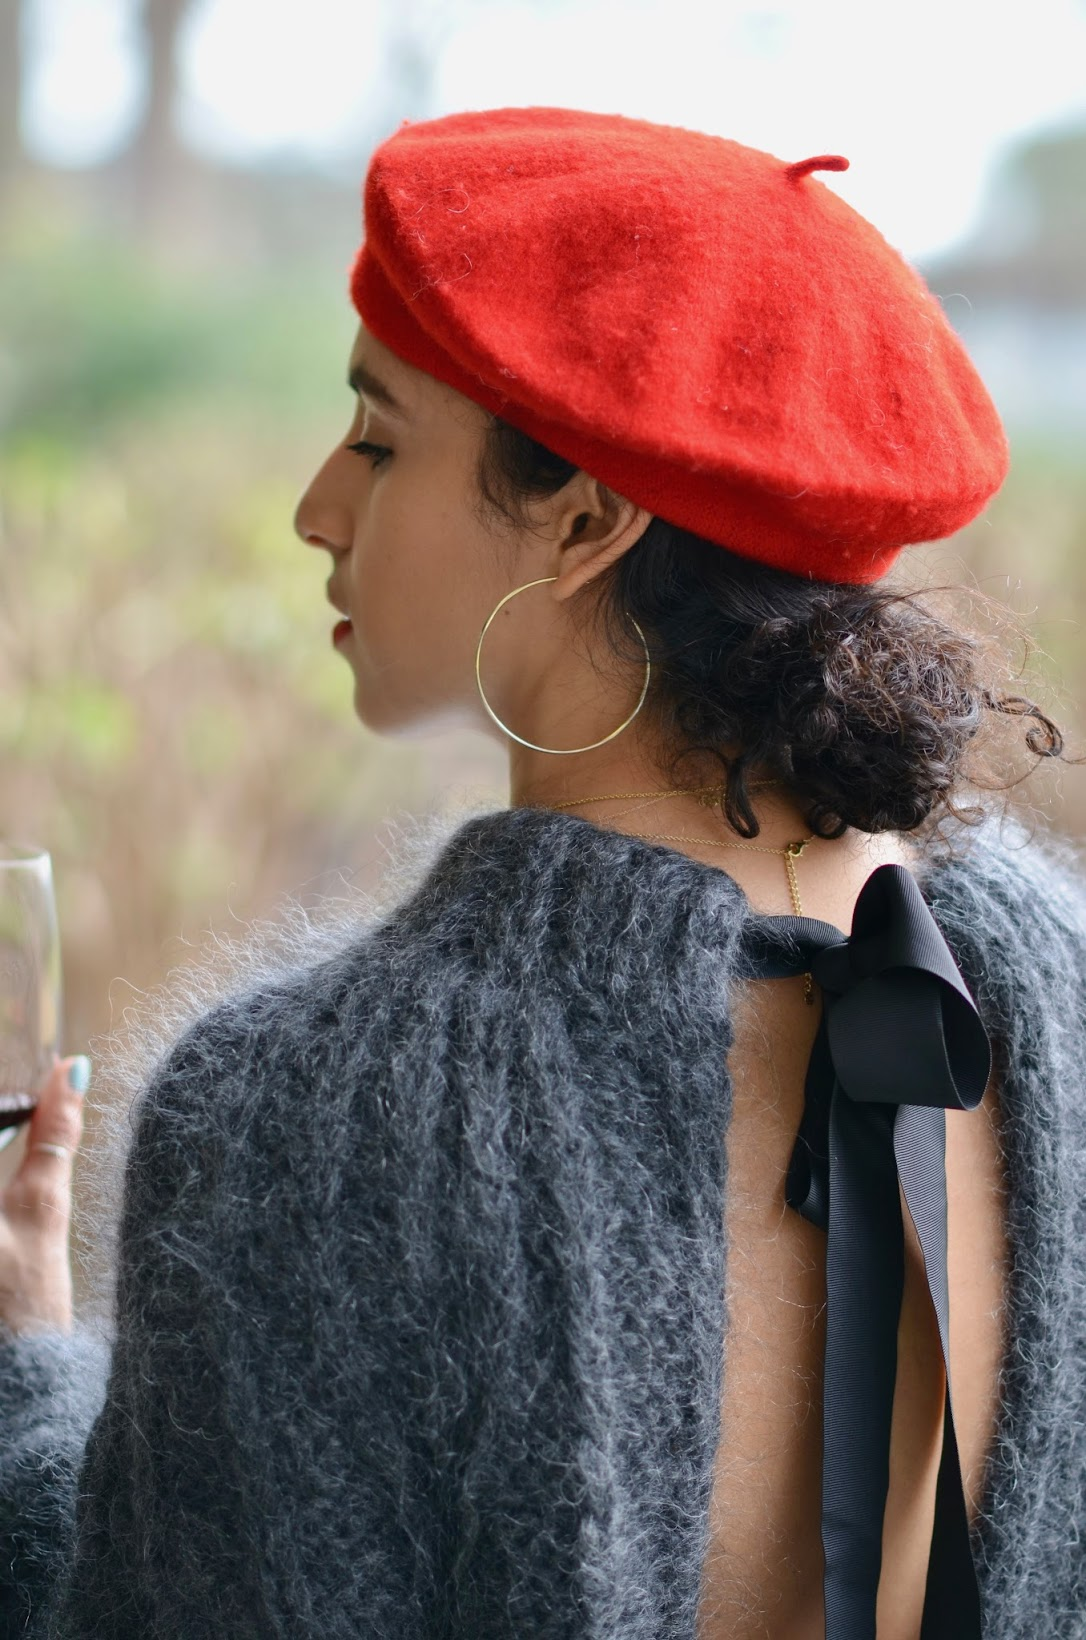 St. Supery St. Helena, St. Supery winery, french vibes, french girl vibes, red beret, red lipstick, St. Helena, wine tour in wine country, Napa Valley, St. Supery Malbec, Ganni mohair sweater, Mejuri necklace